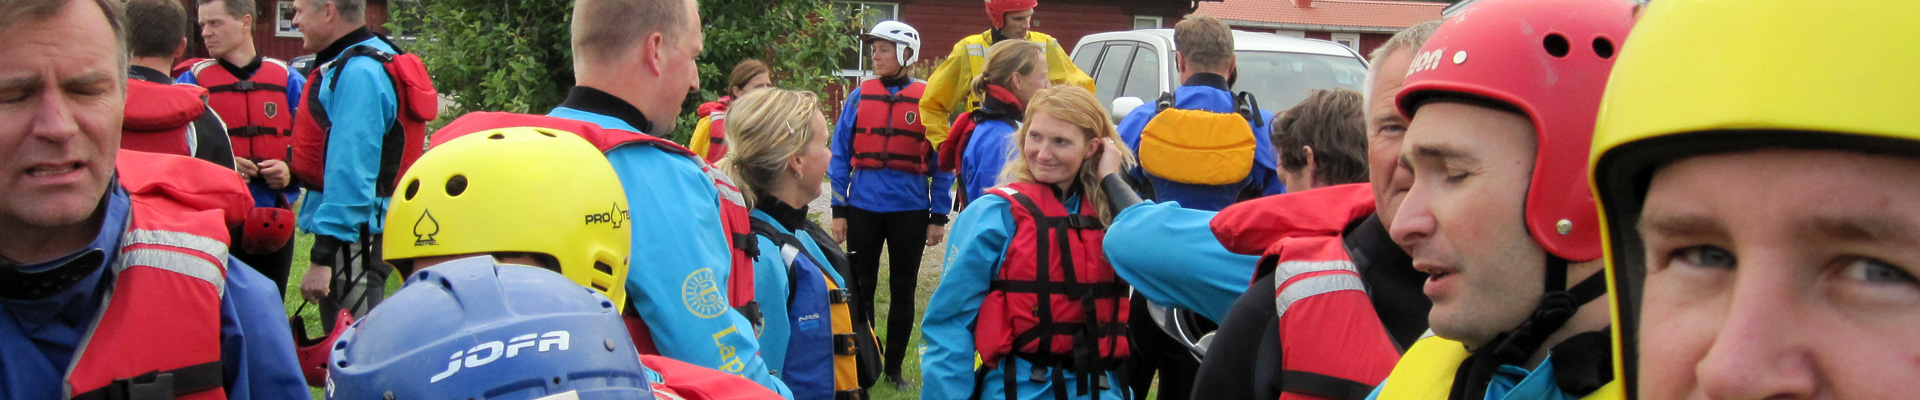 Rafting group in Swedish Lapland